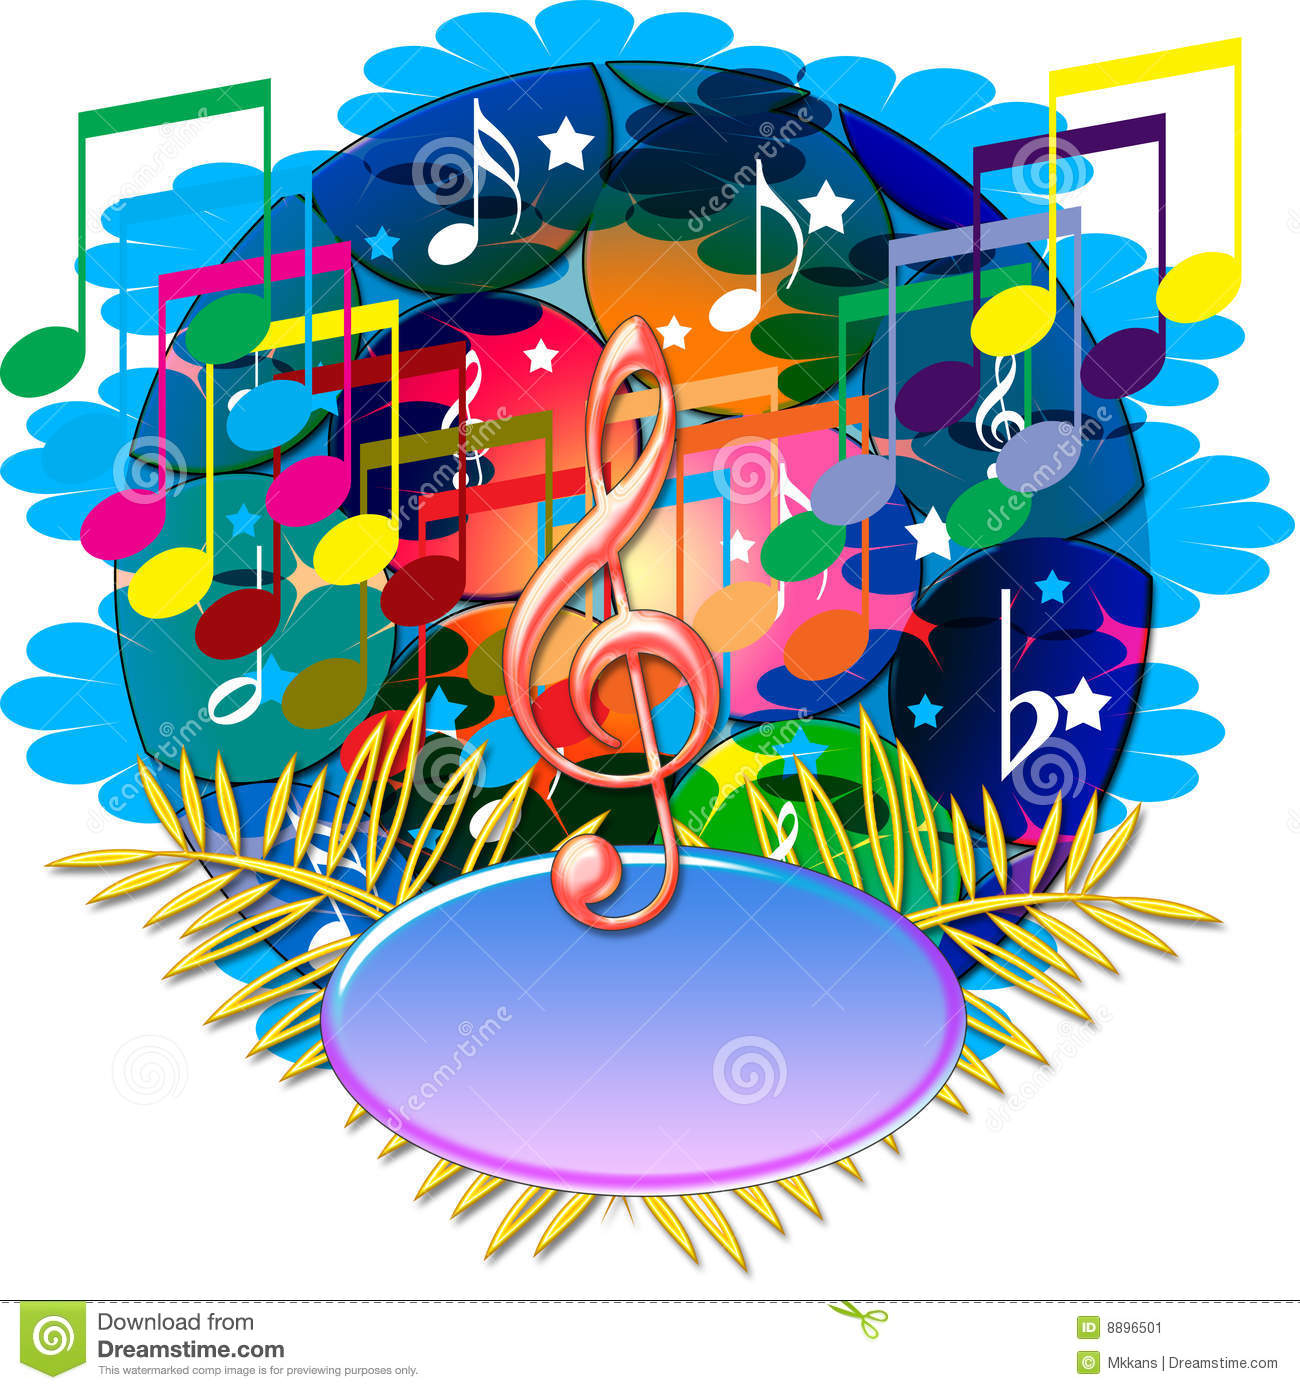 Image Result For Royalty Free Music For Web Videos